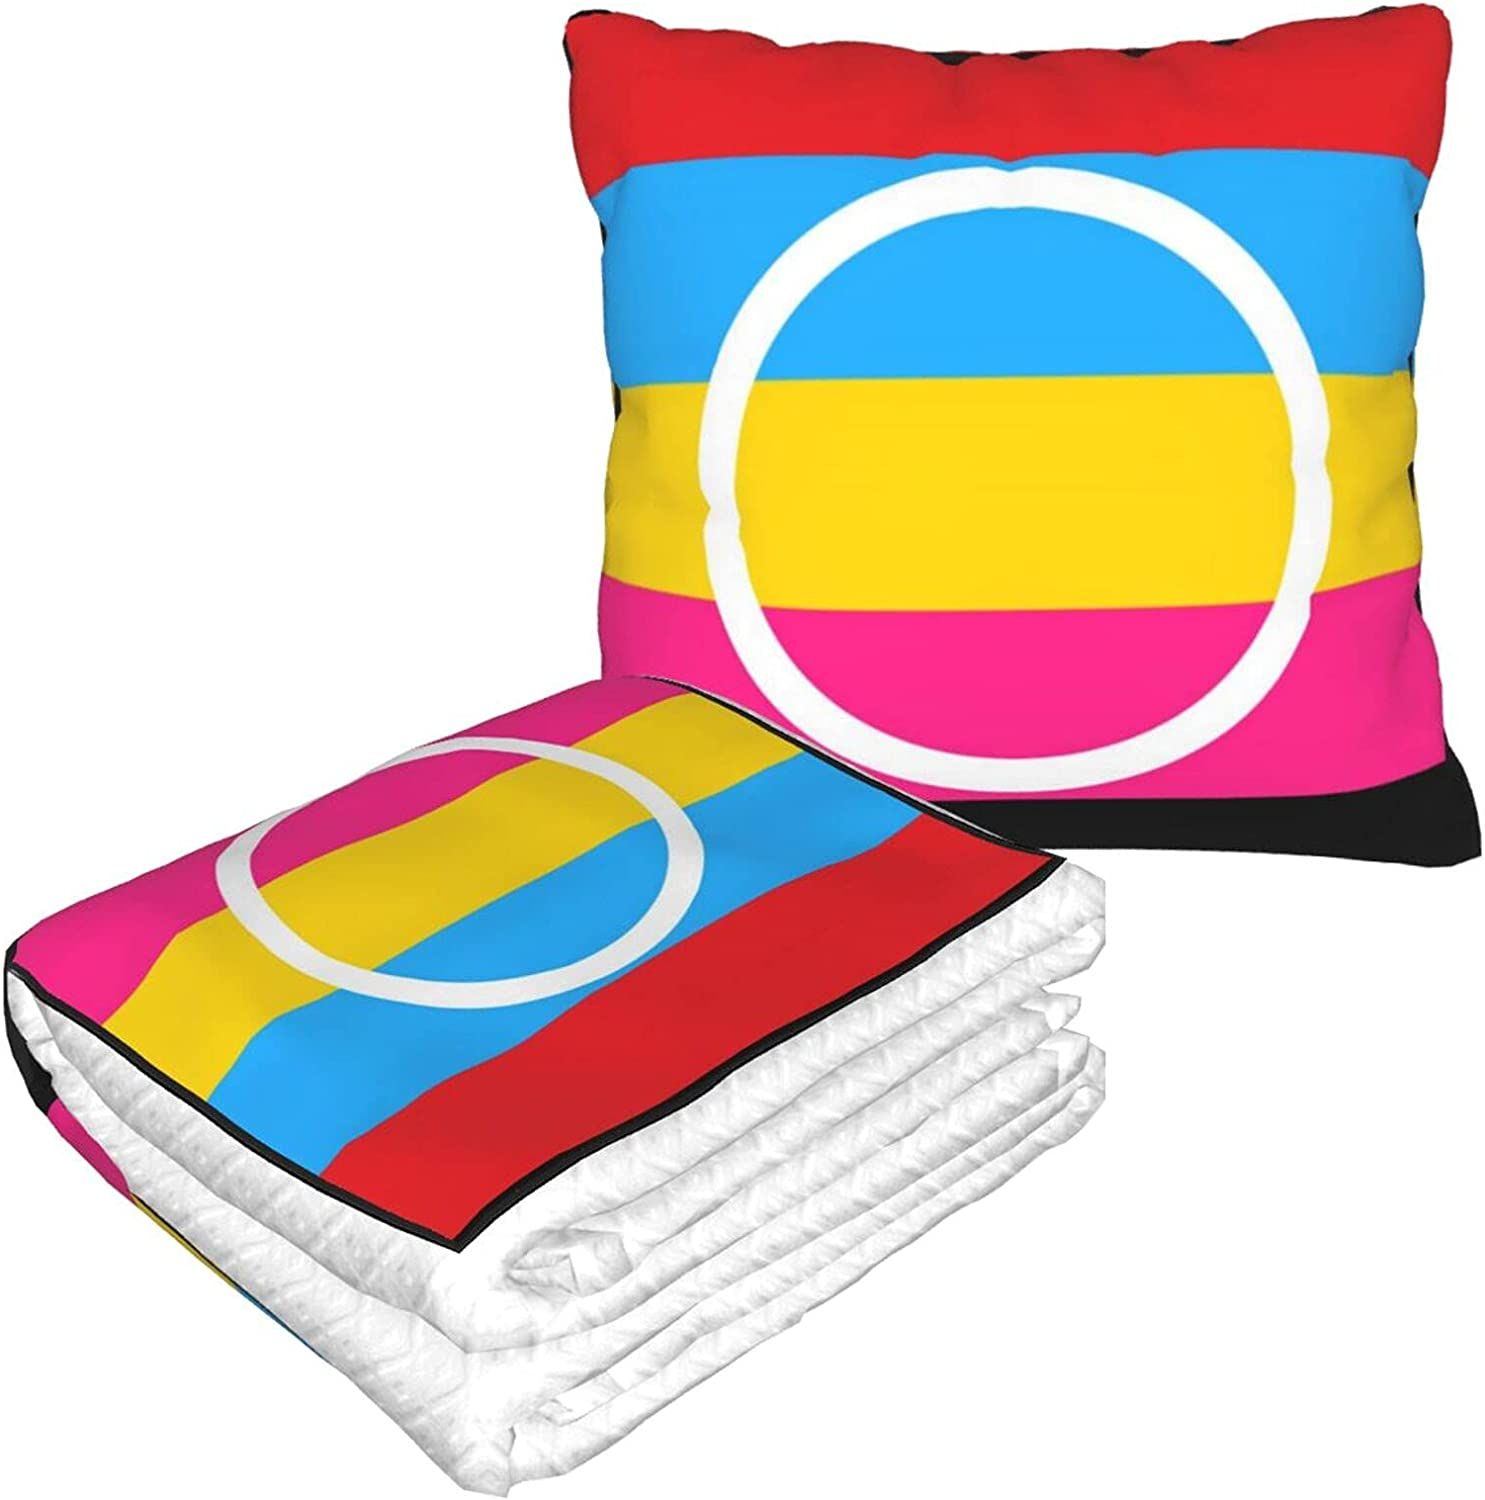 Foldable Pillow Blanket Polyamory Pride for Travel New sales Flag Ranking TOP9 LGBTQ C